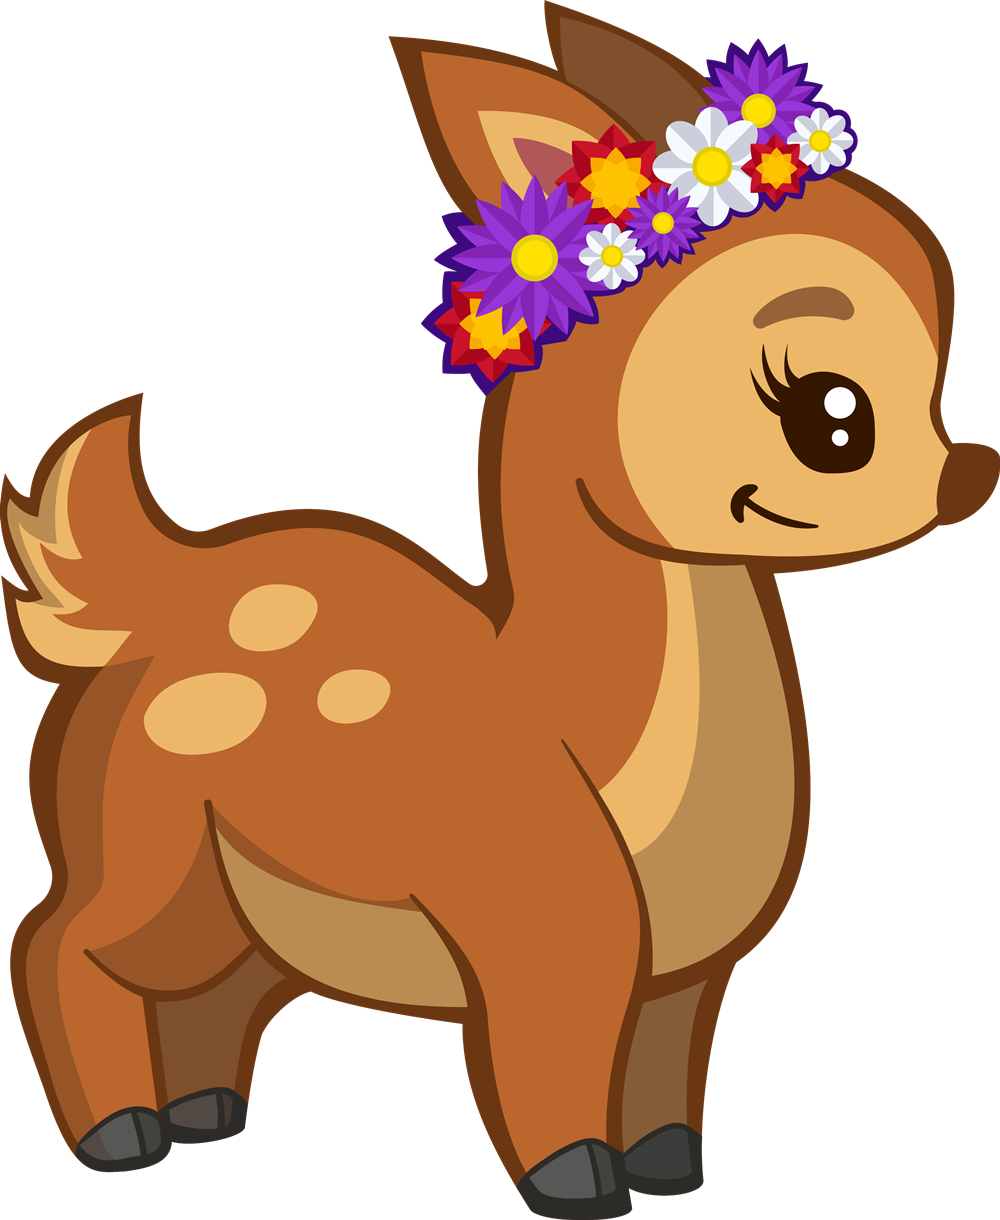 Impala at getdrawings com. Deer clipart cute